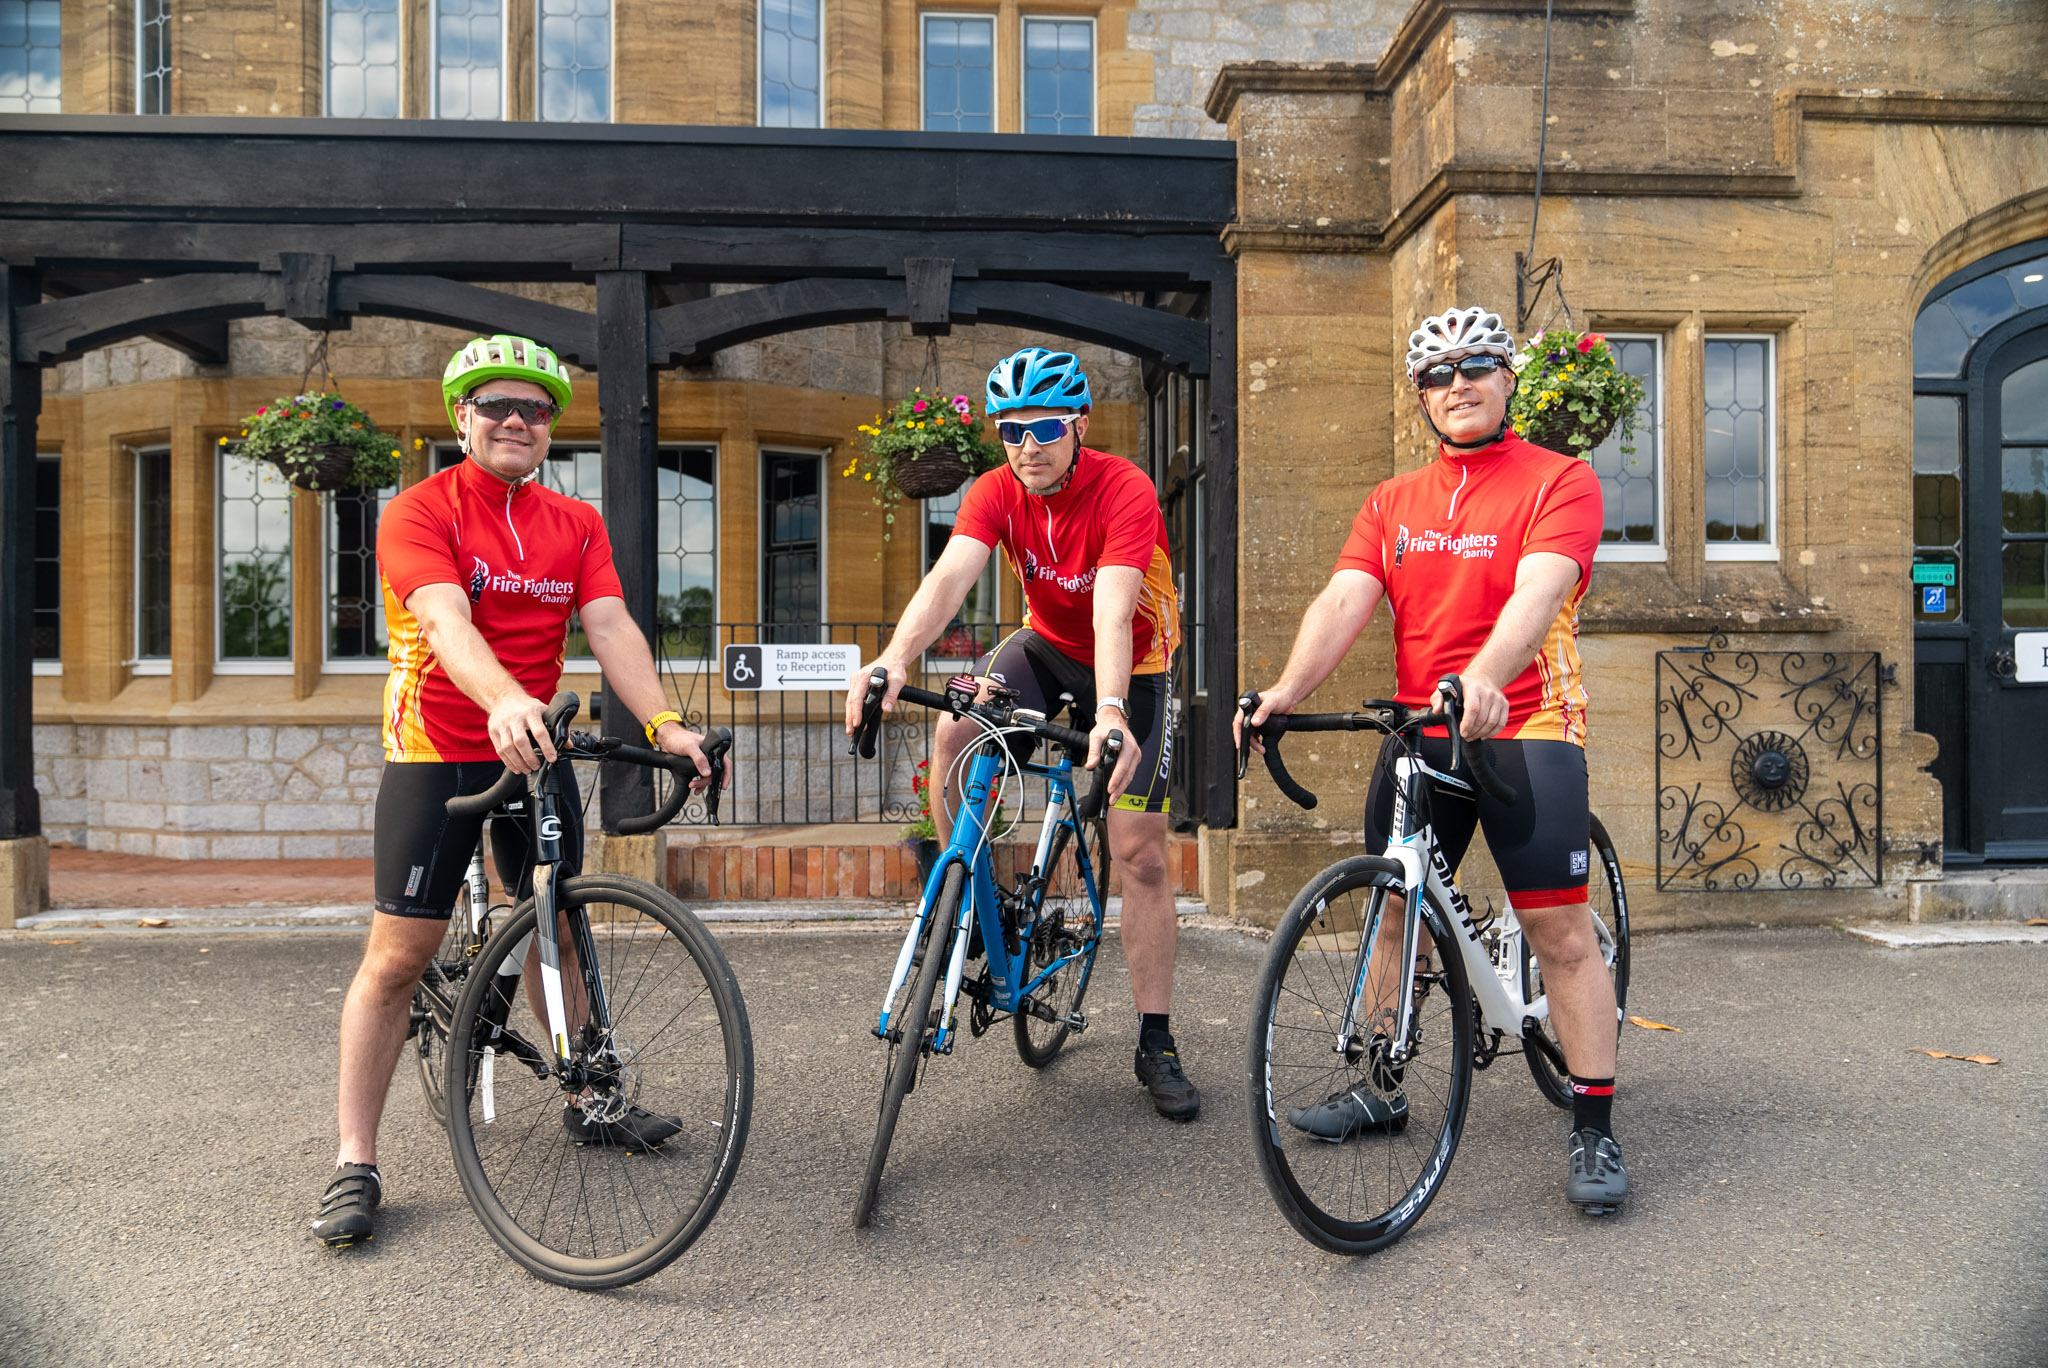 Team spread powerful message as they take on The Longest Ride